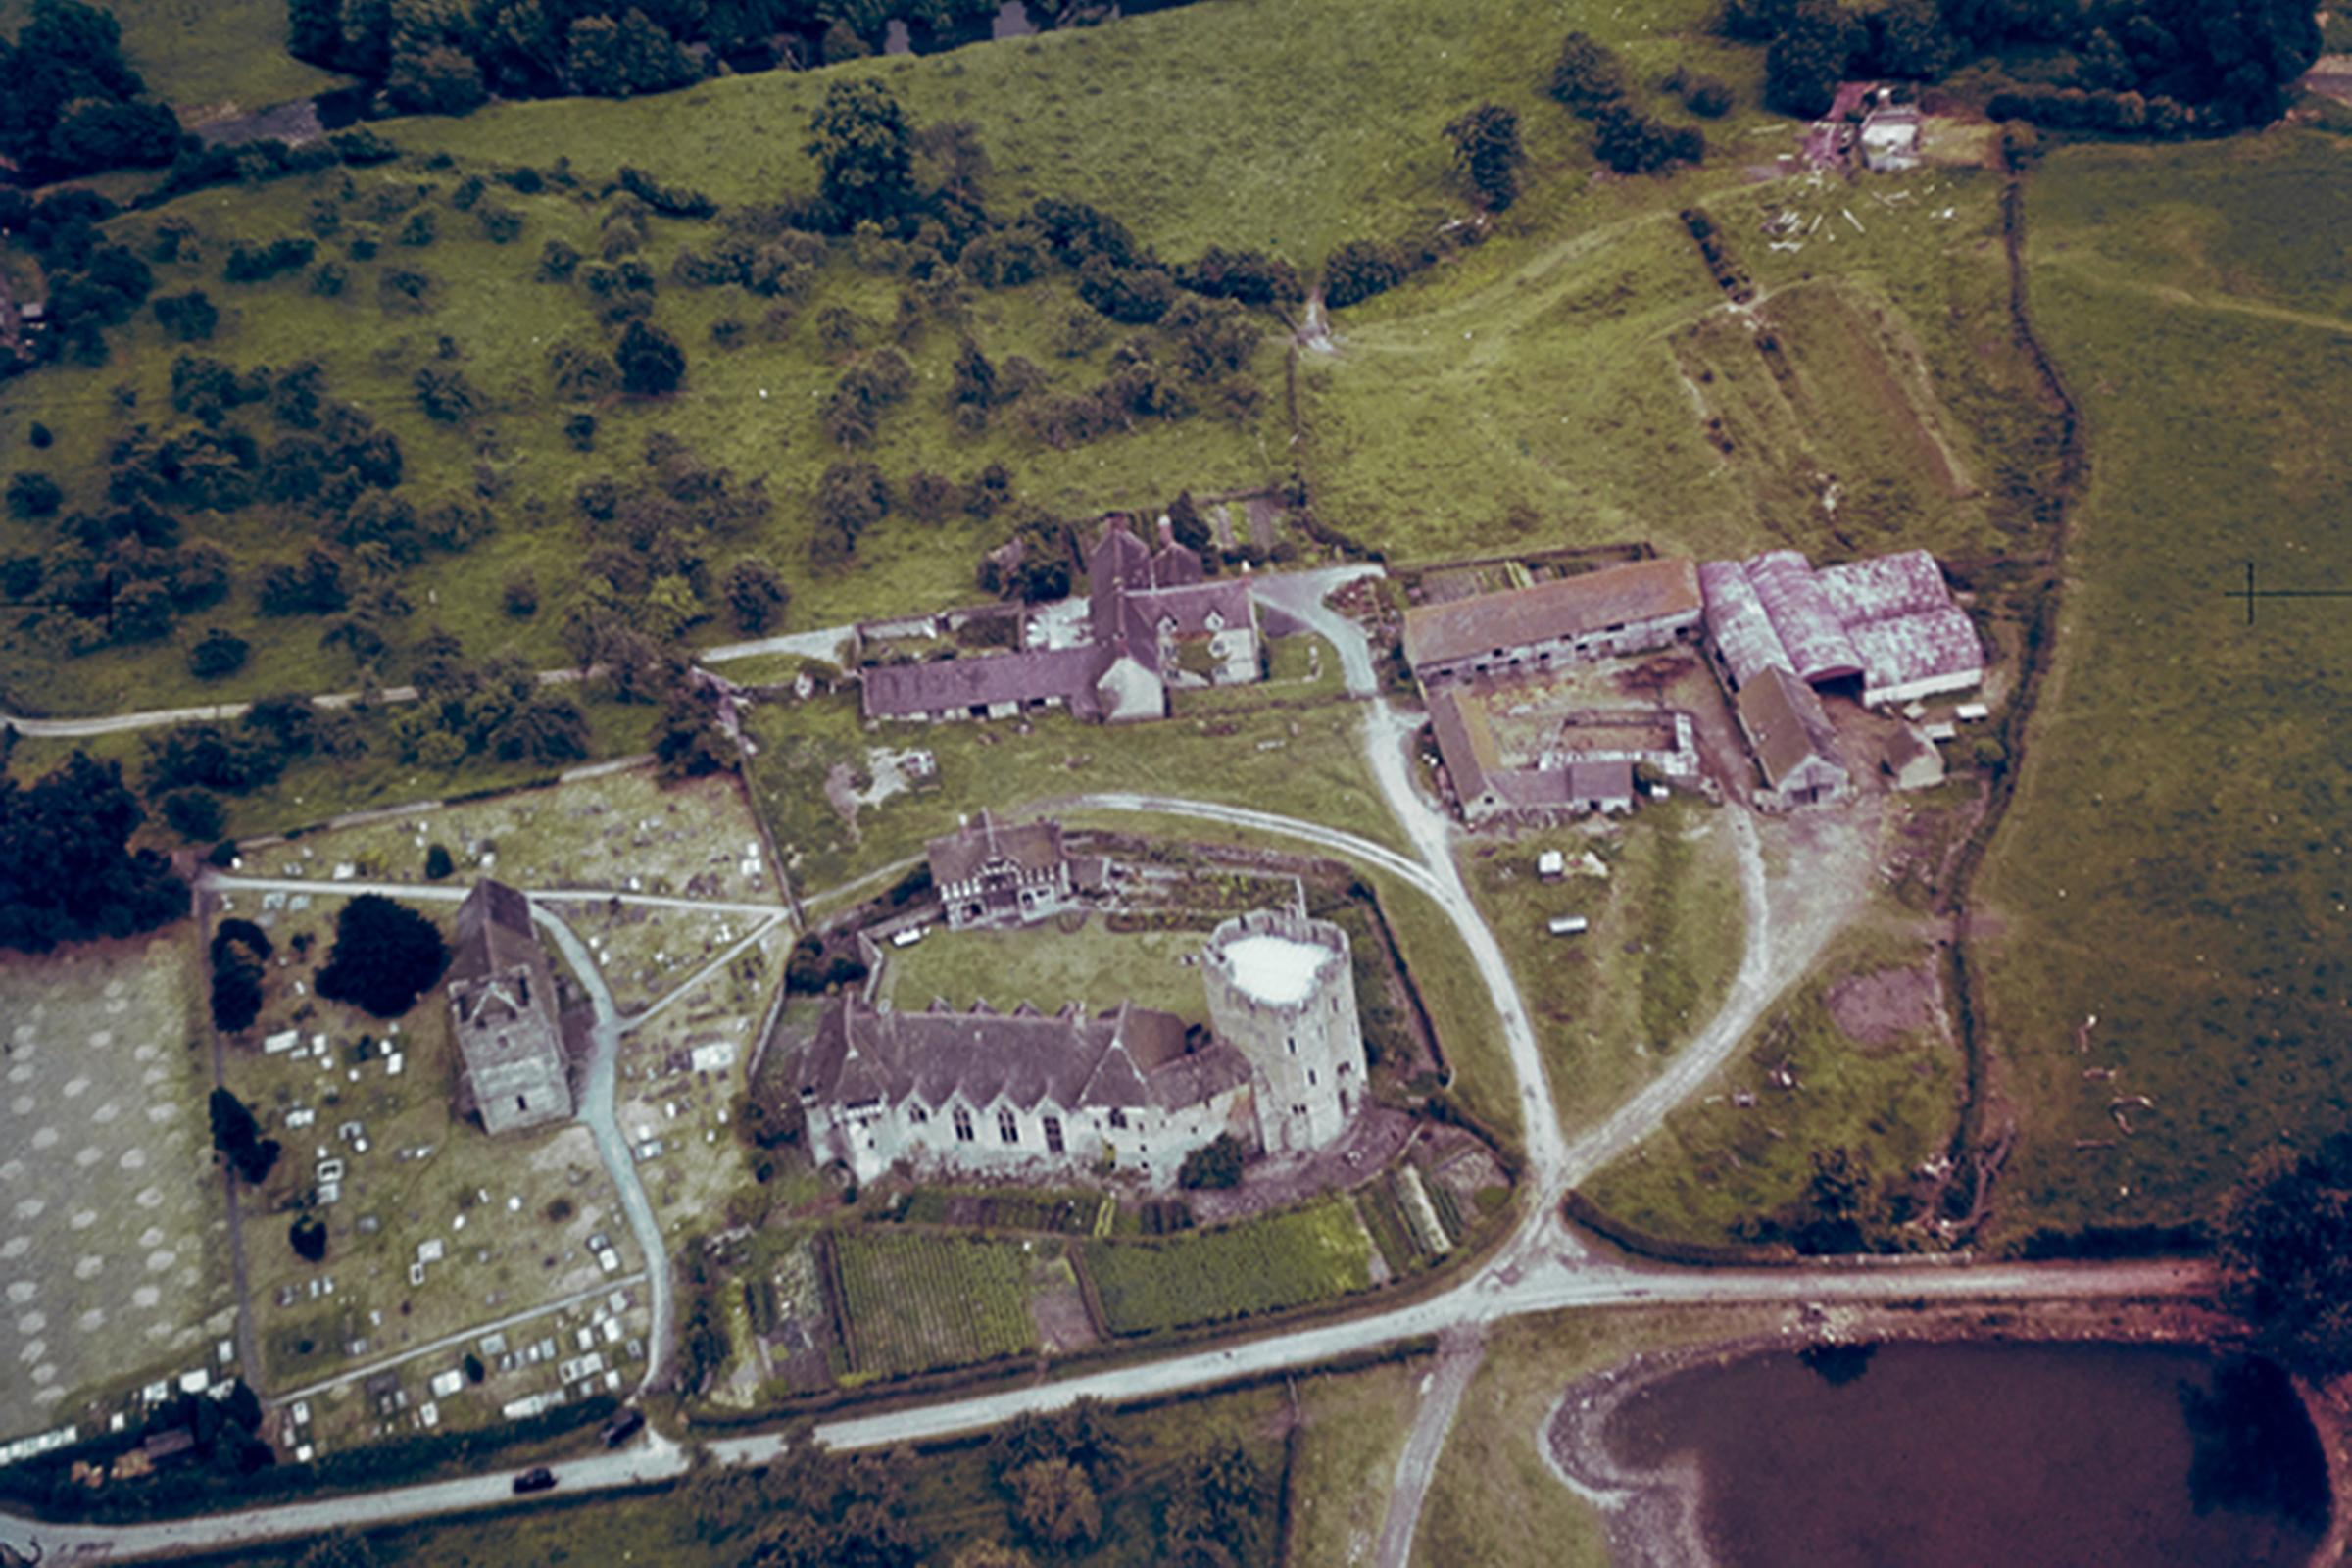 Aerial photograph of Stokesay Castle, Shropshire